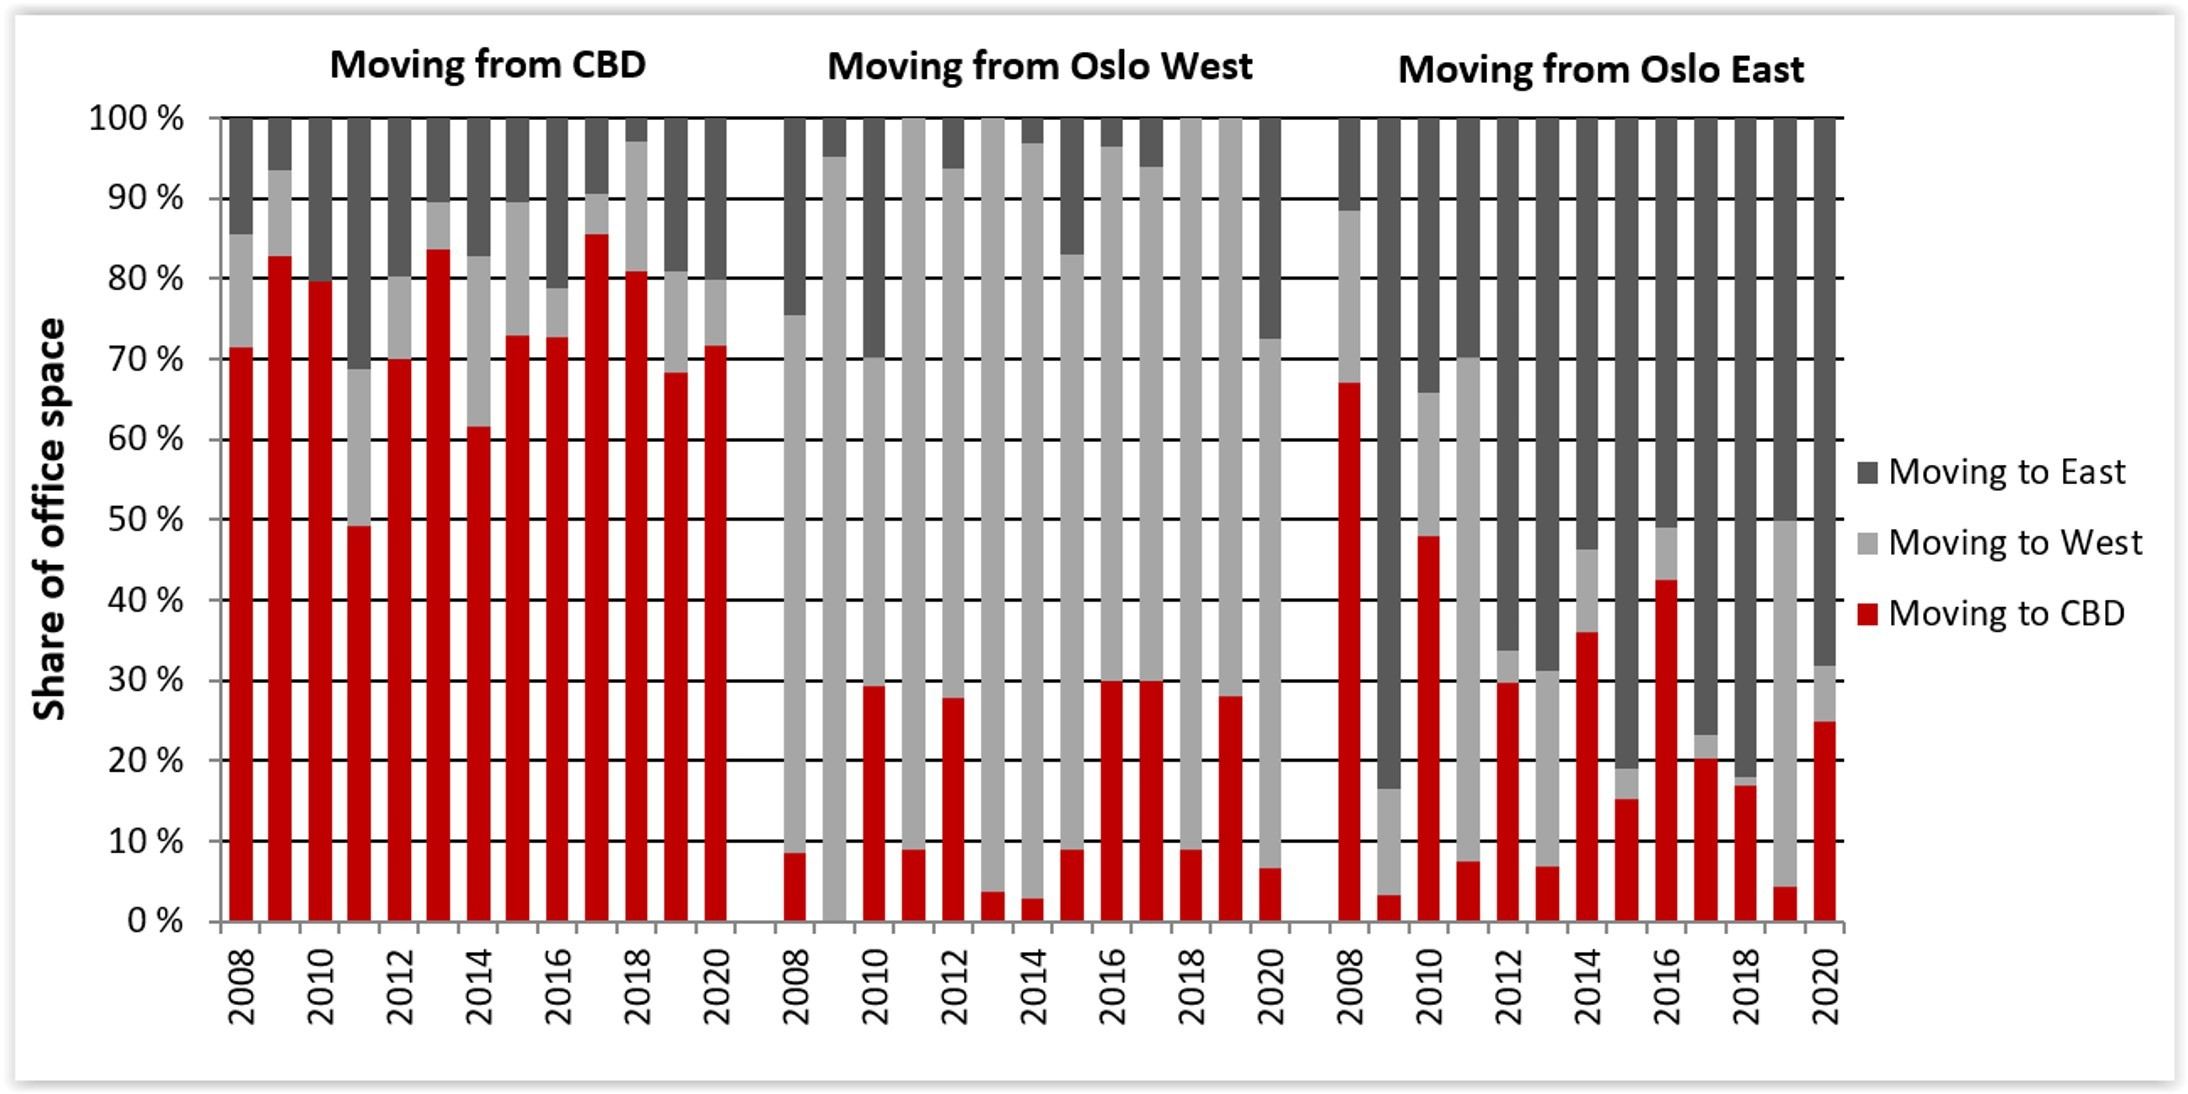 Historical moving patterns, as percentage of floor space